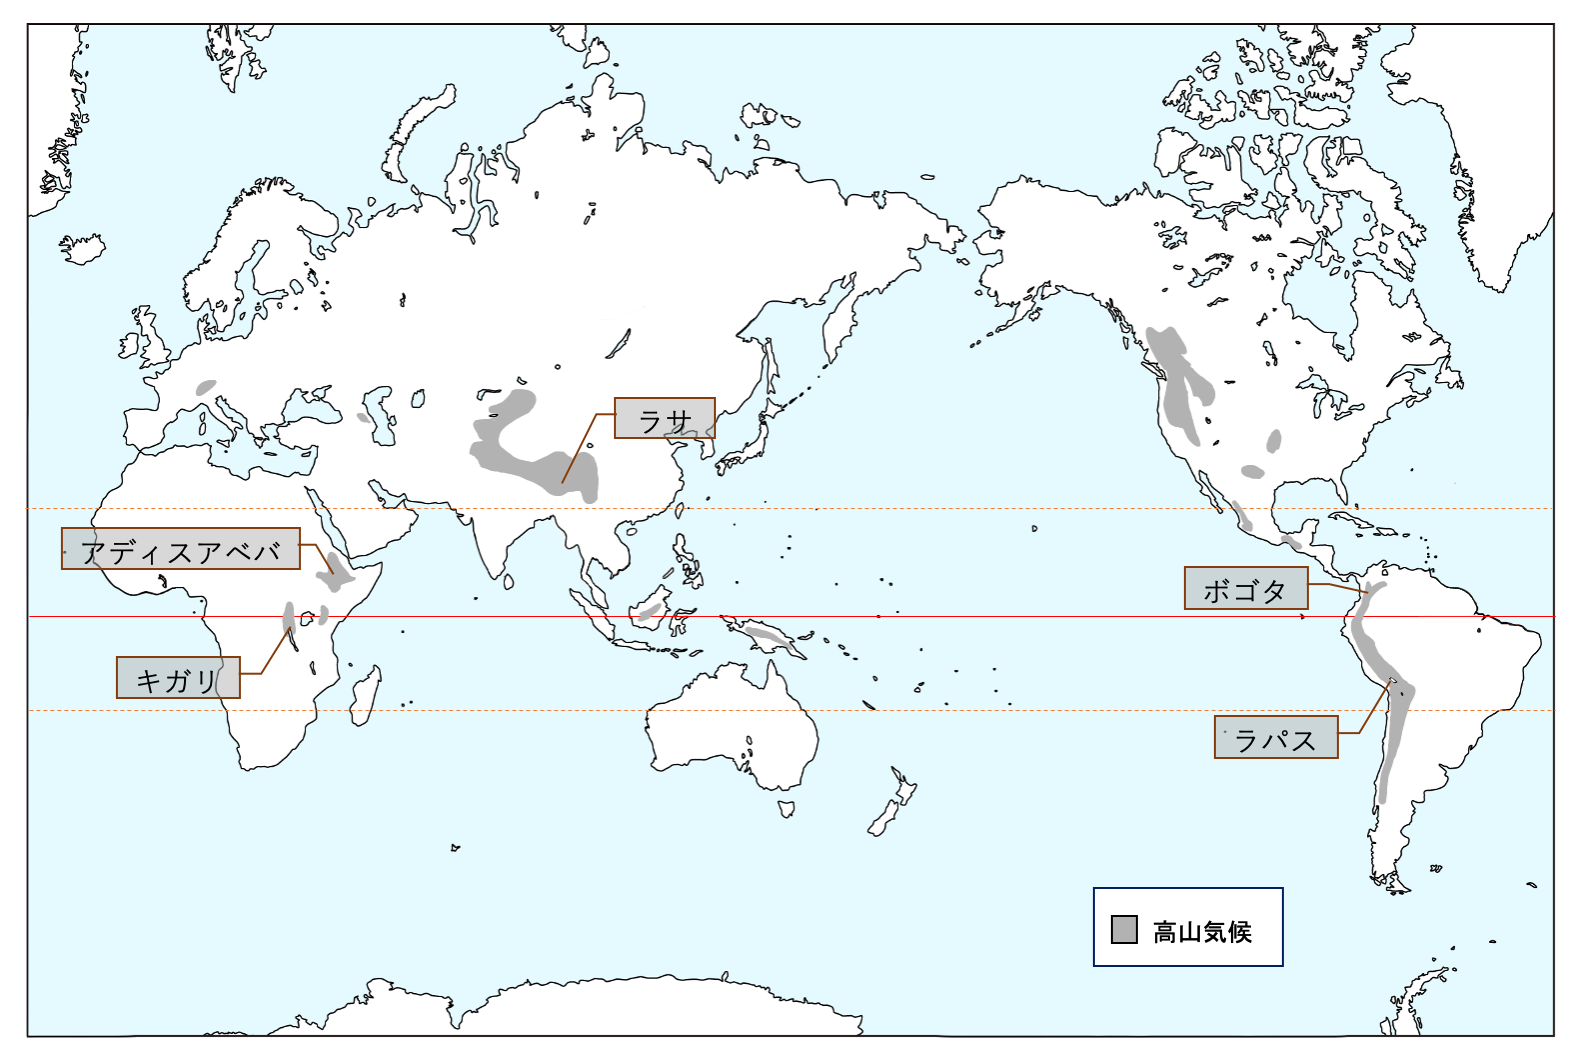 H-map